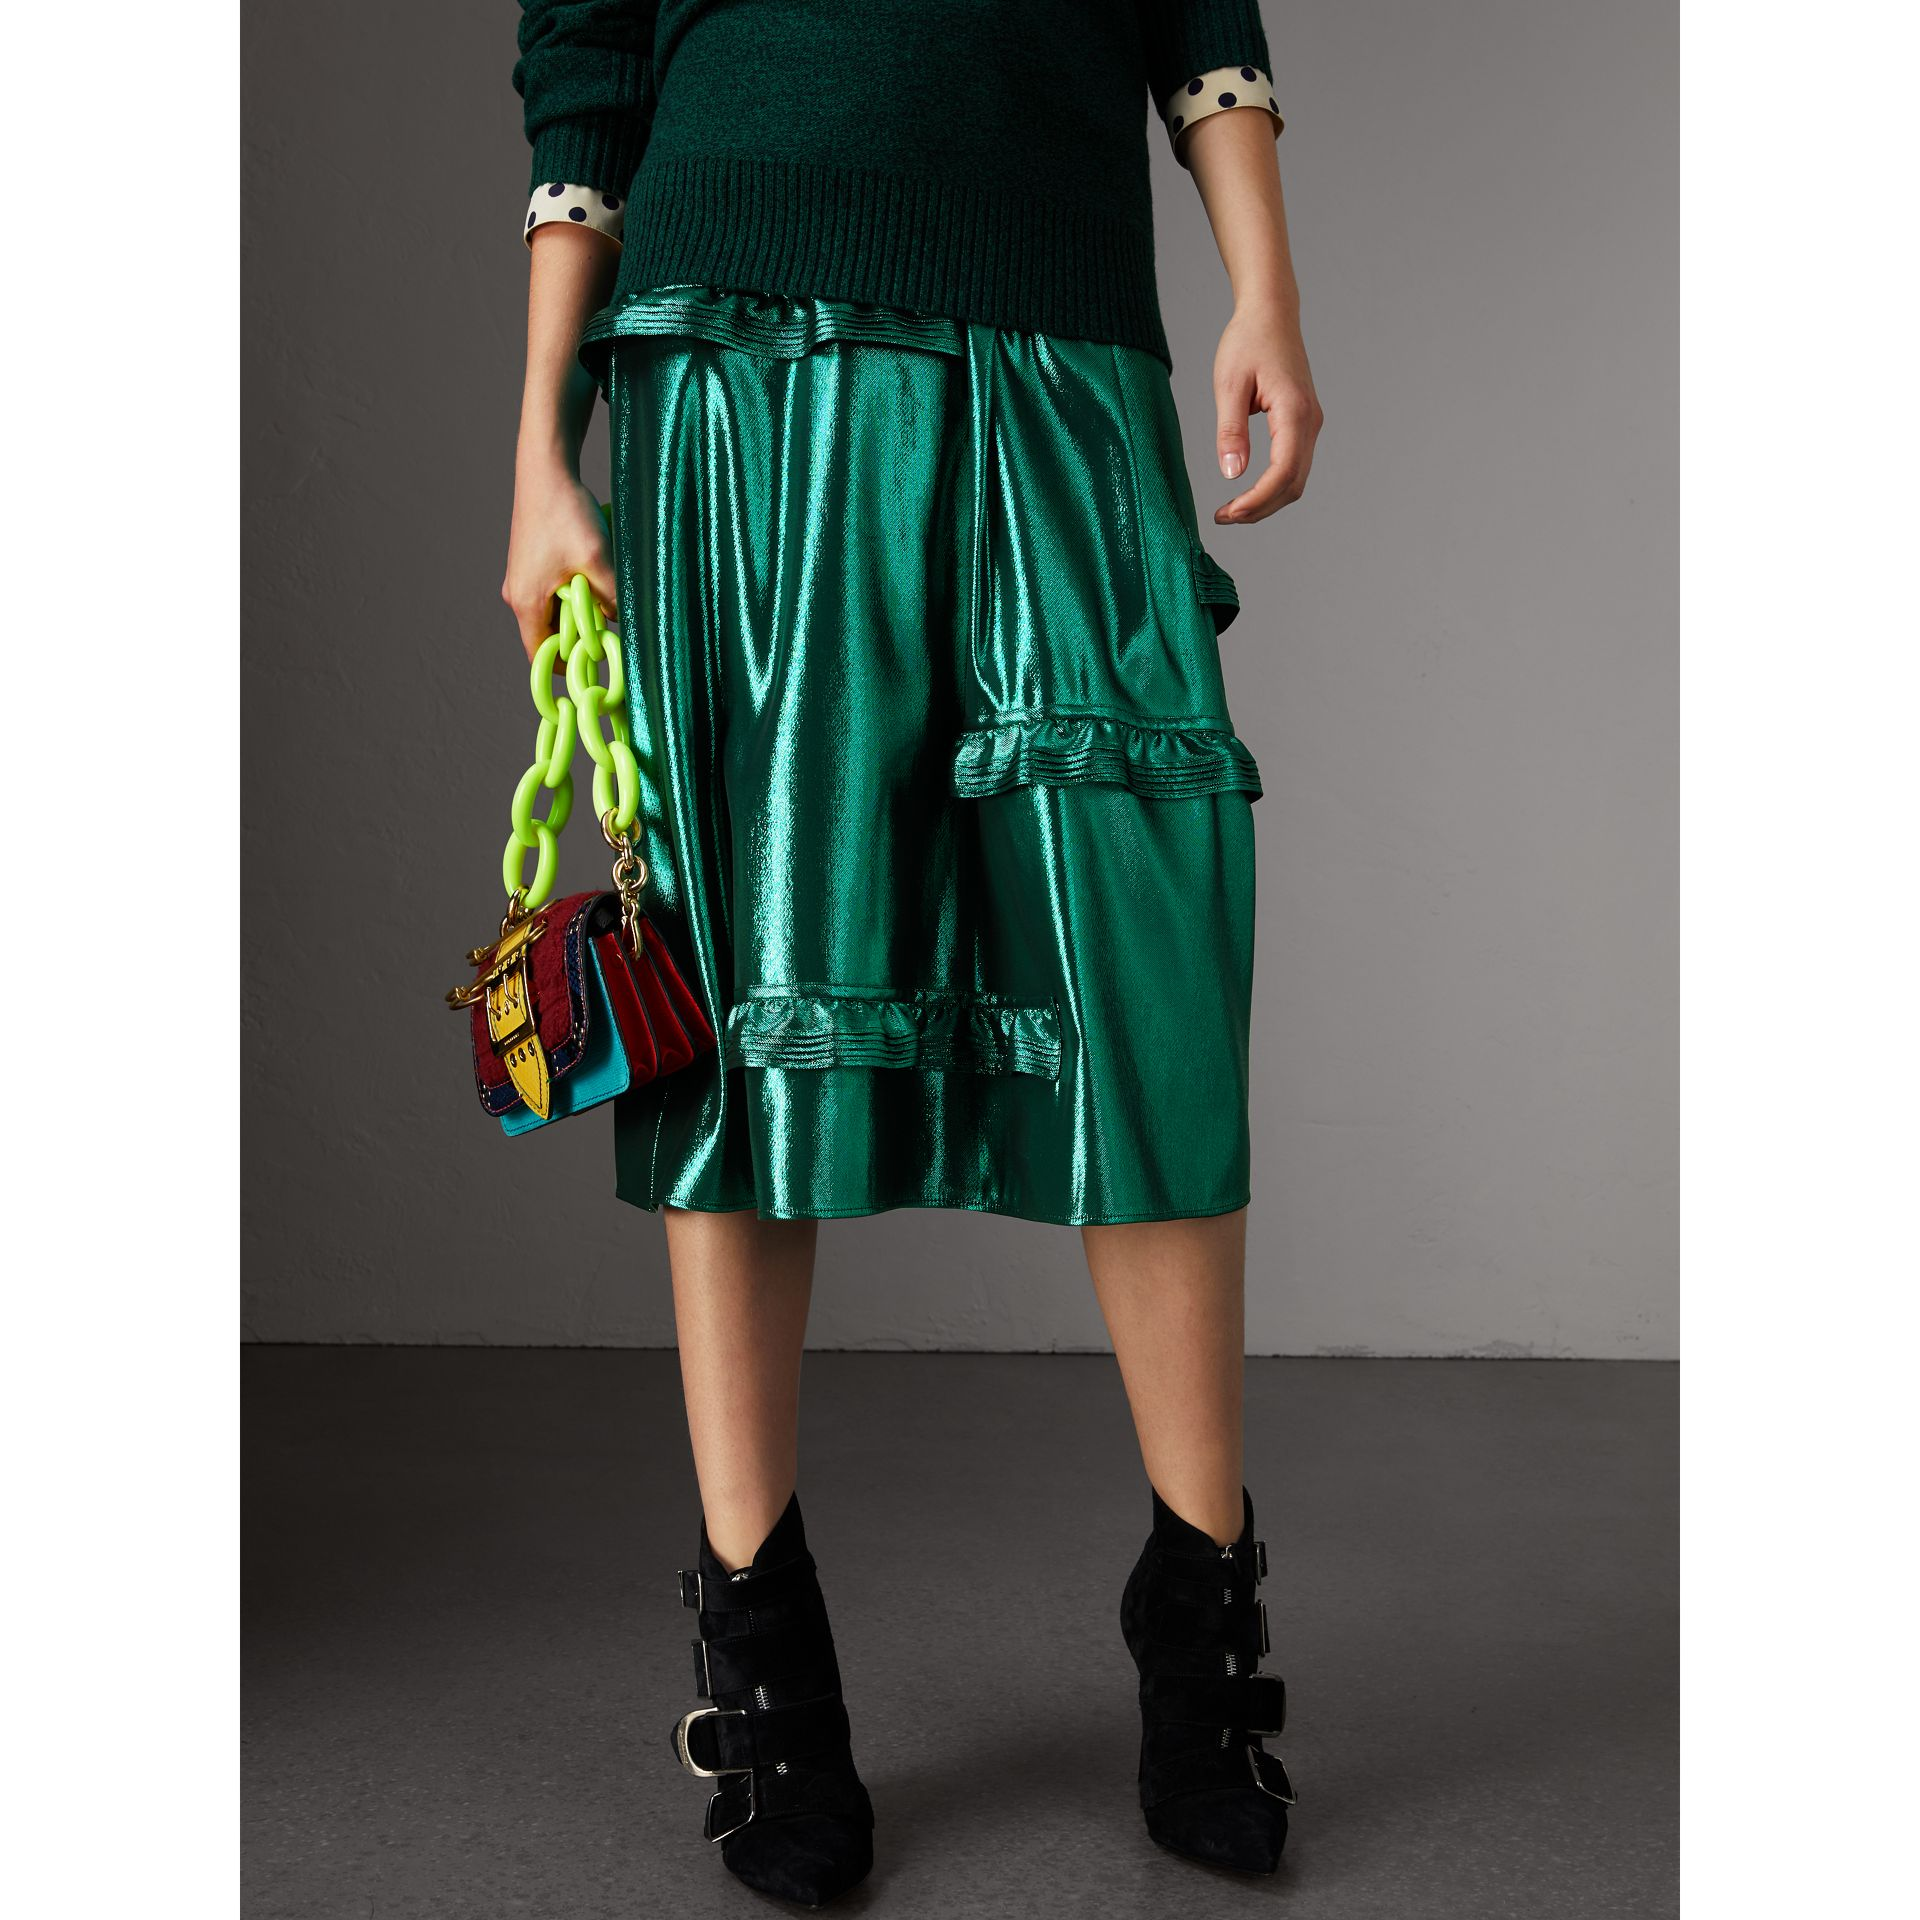 Ruffle Detail Lamé Skirt – Online Exclusive in Turquoise - Women | Burberry Singapore - gallery image 4